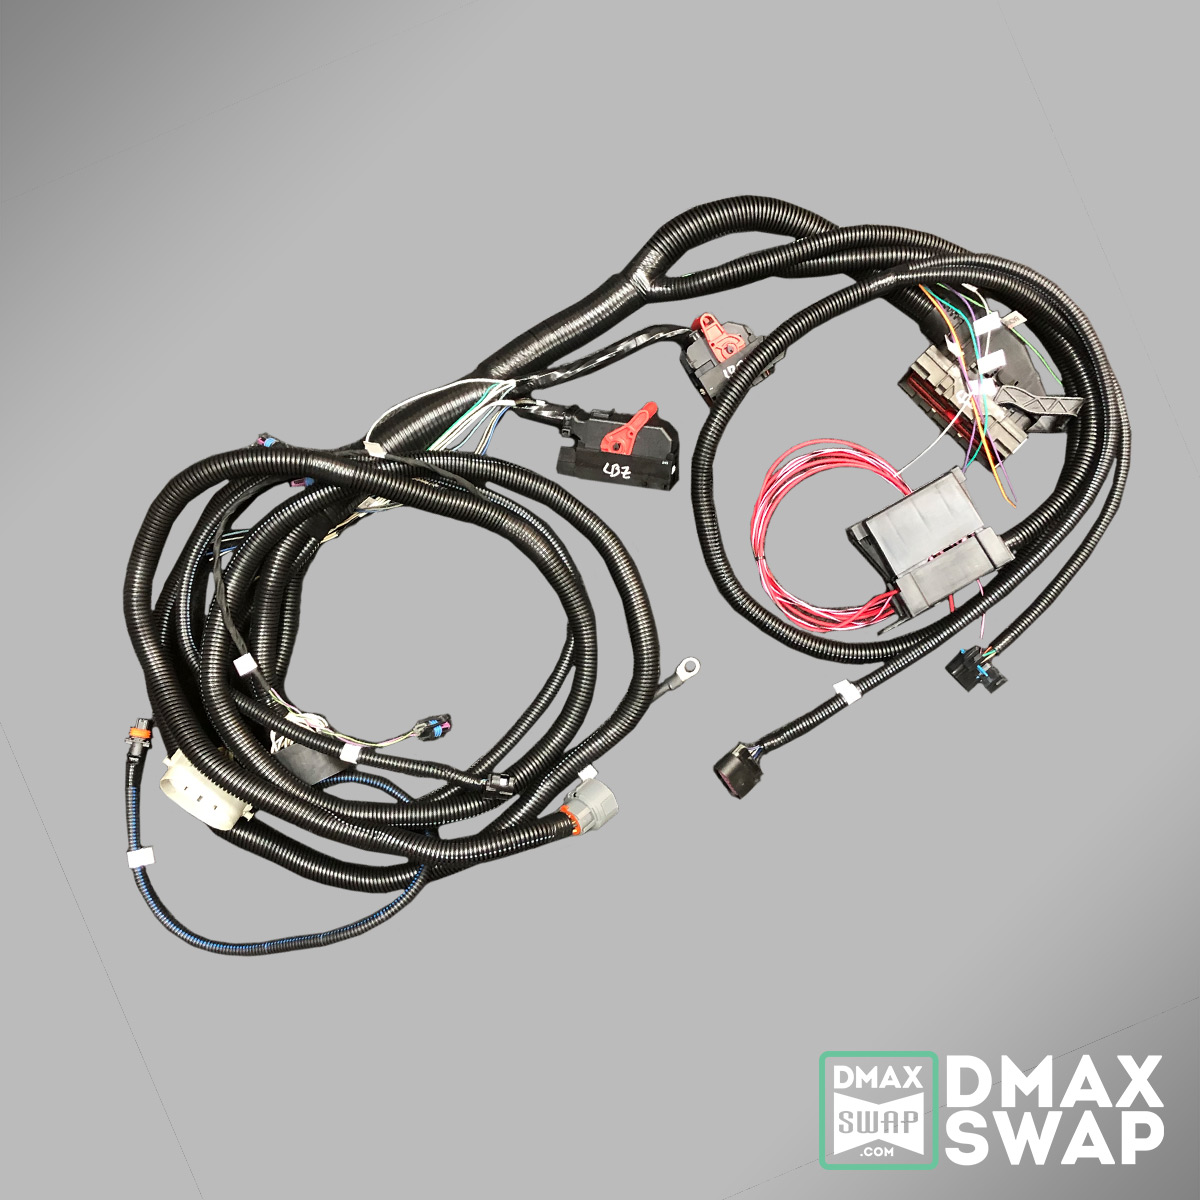 Custom Standalone ECM / TCM harnesses (LB7, LLY, LBZ, LMM) – DMAX on duramax conversion fuel tank, duramax standalone harness, cummins conversion wiring harness, toyota conversion wiring harness, duramax swap harness,